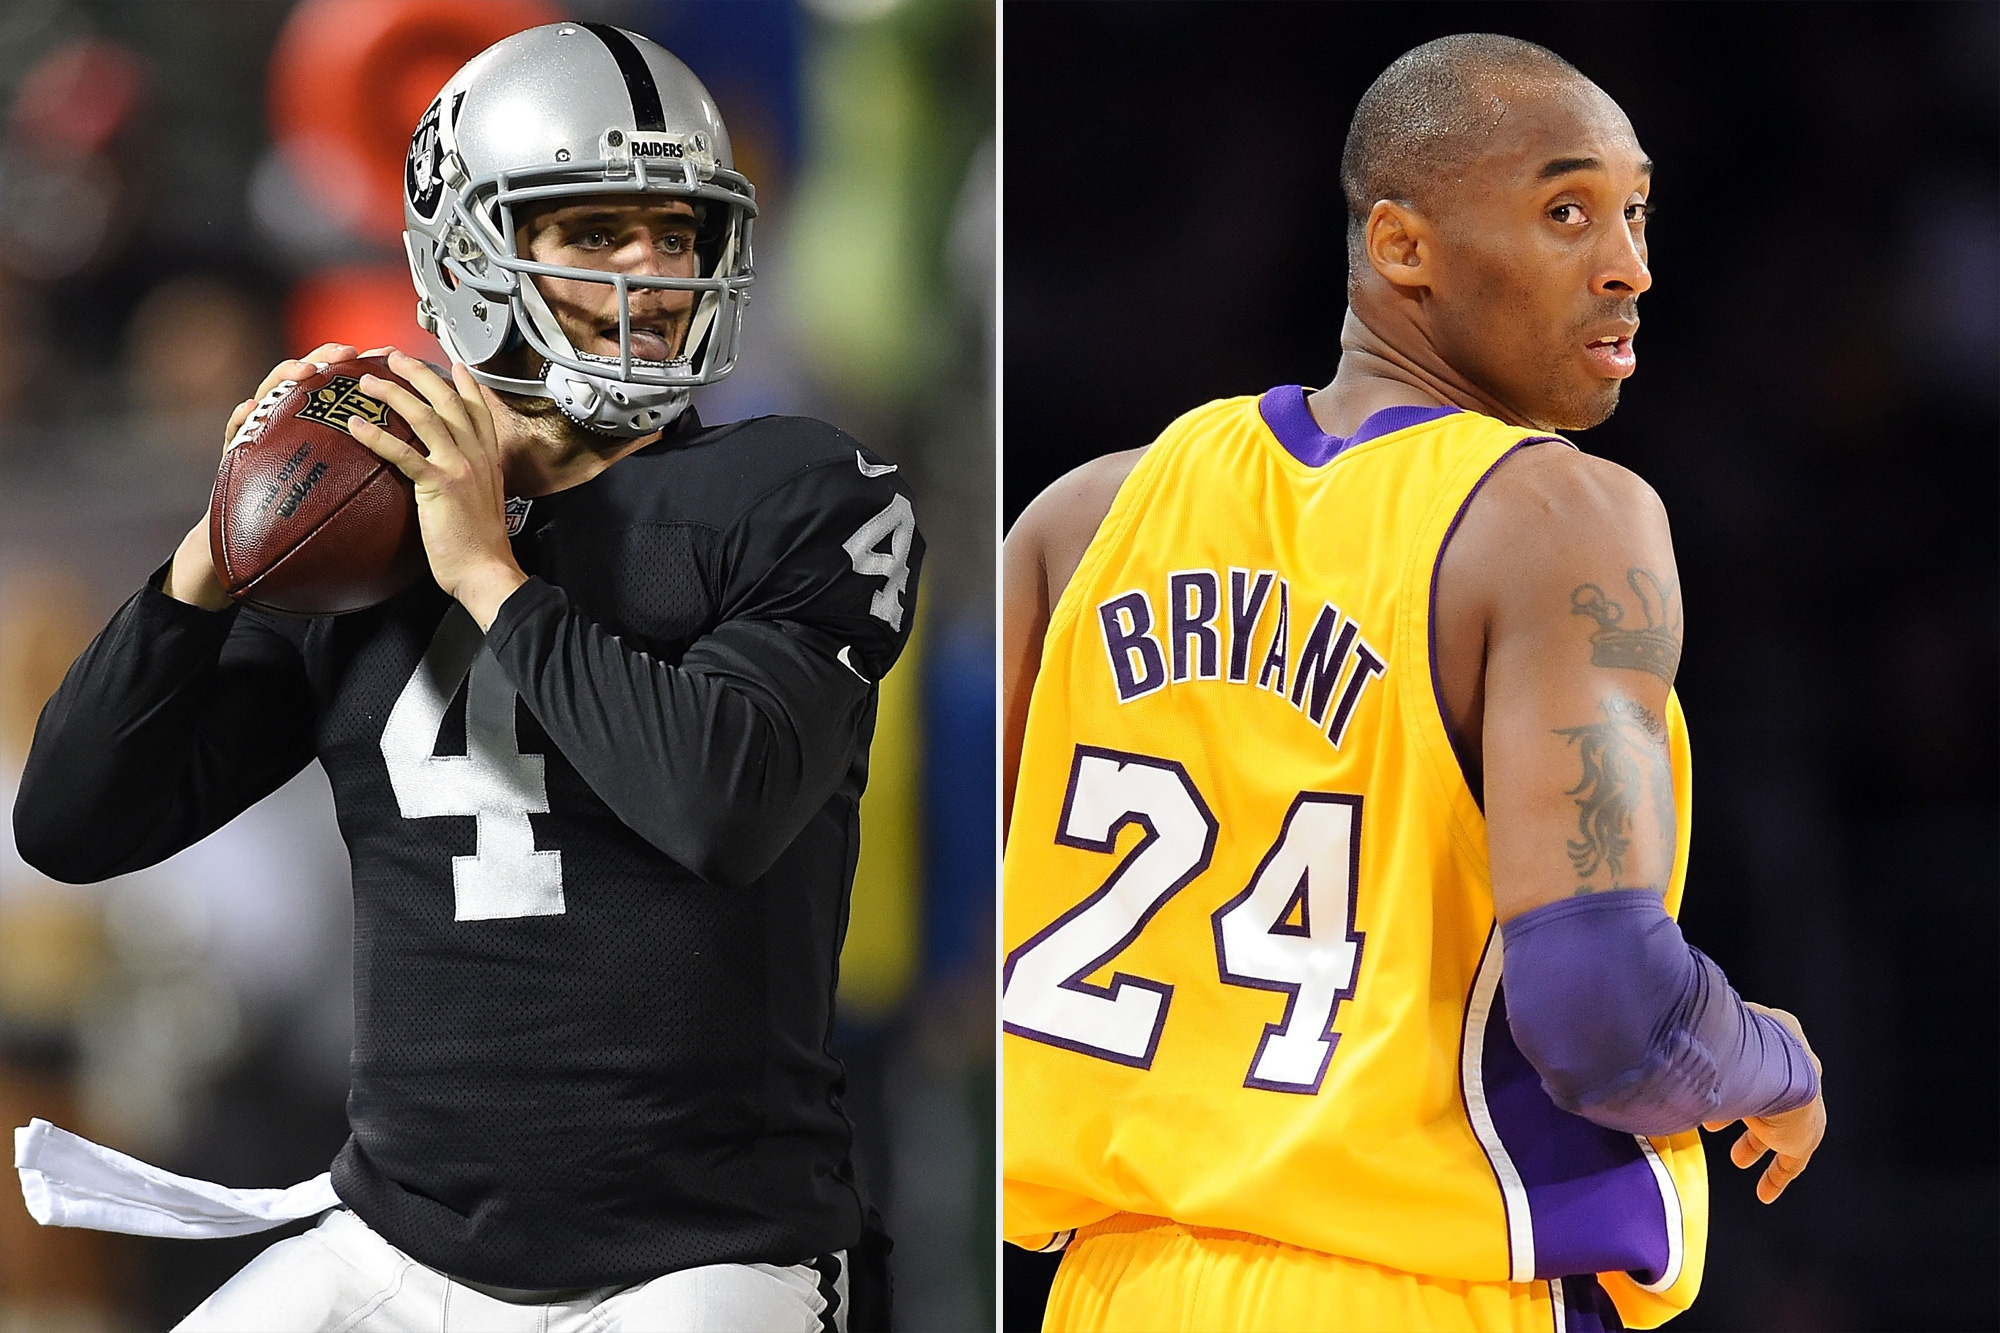 Raiders QB Derek Carr to Honor Kobe Bryant with Arm Sleeve This Season: 'He Meant So Much to Me'